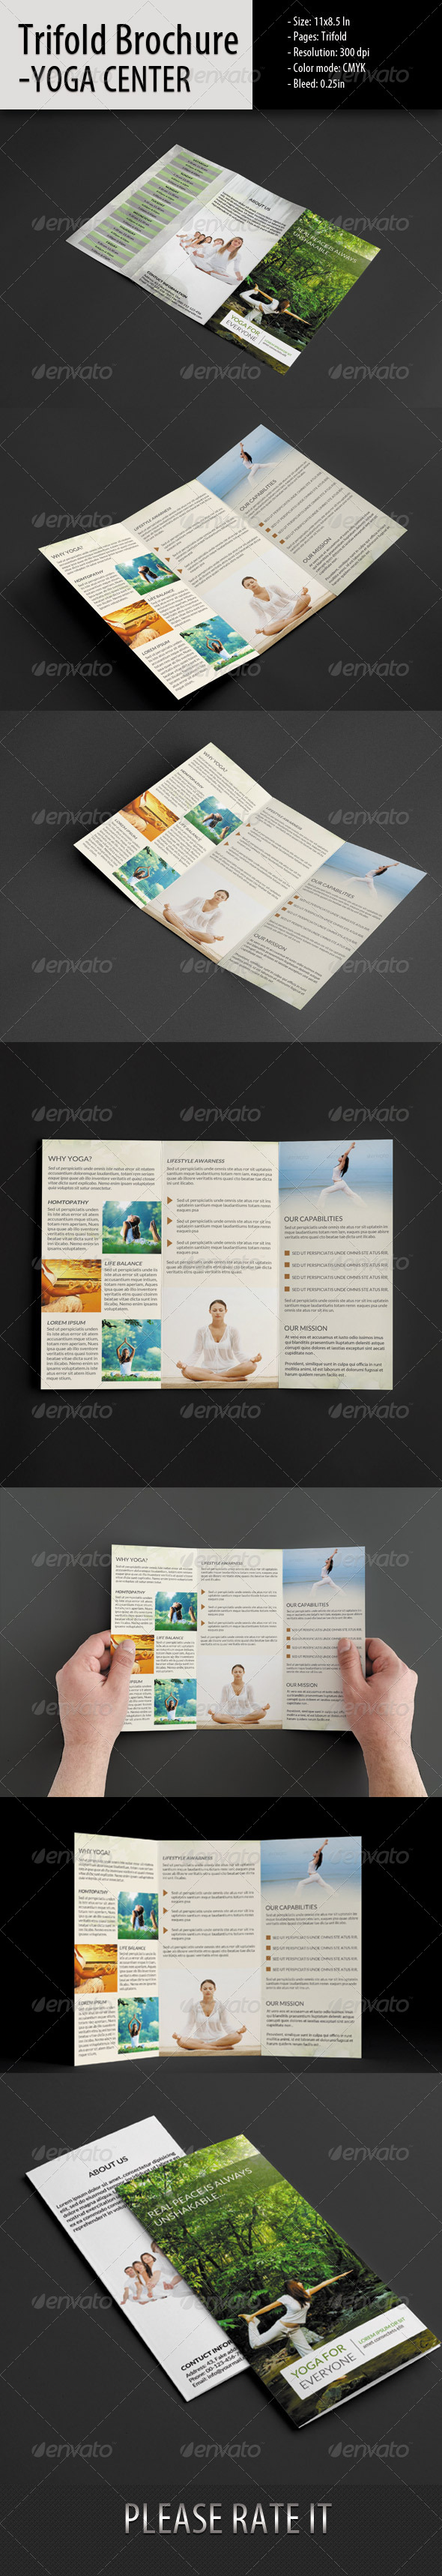 GraphicRiver Trifold Brochure For Yoga Center 5794377